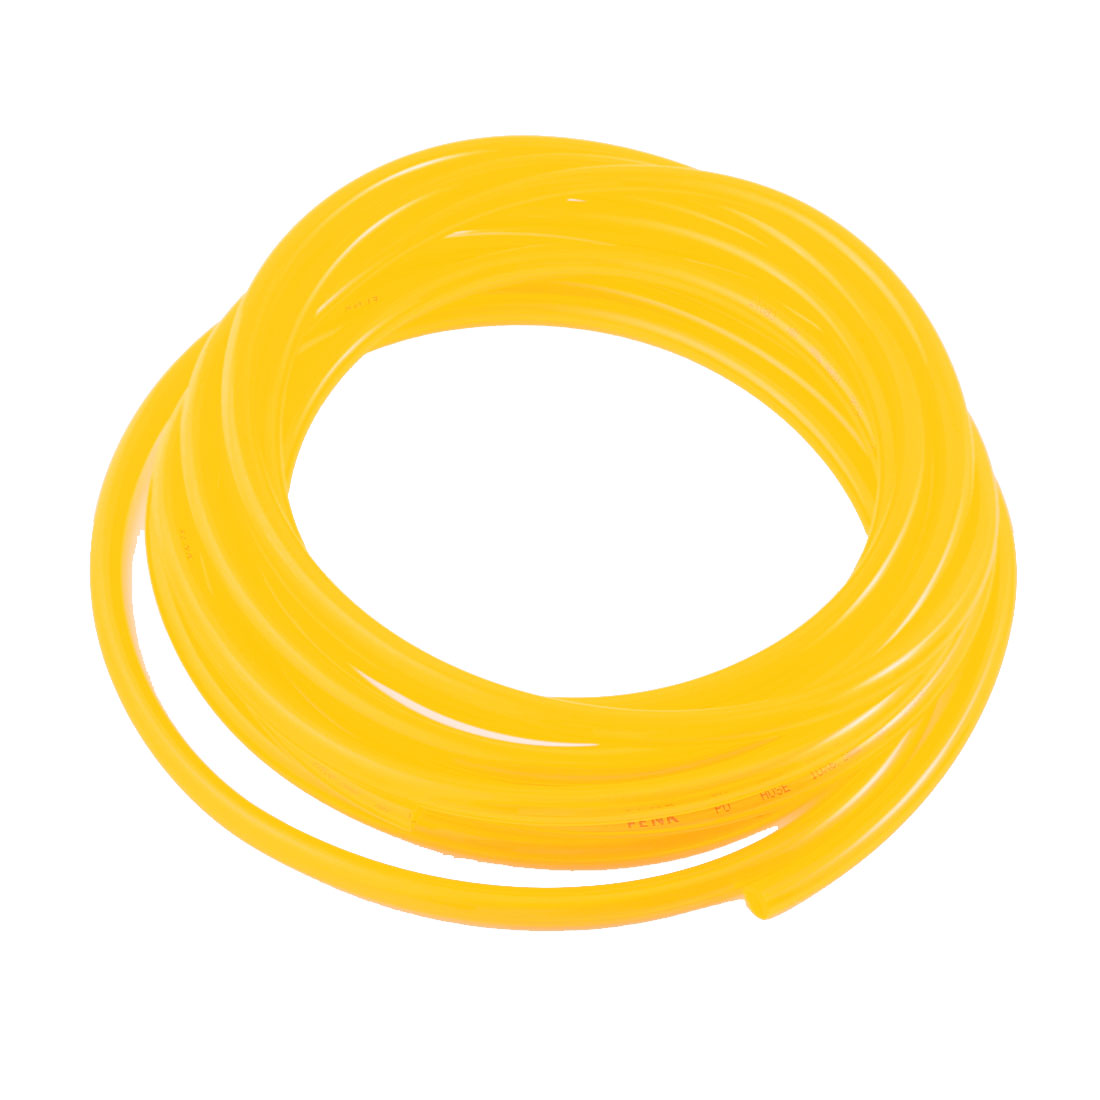 Engine Gas Fuel Oil Injection PU Line Tubing Tube 6.5mmx10mm Dia 23Ft Clear Yellow